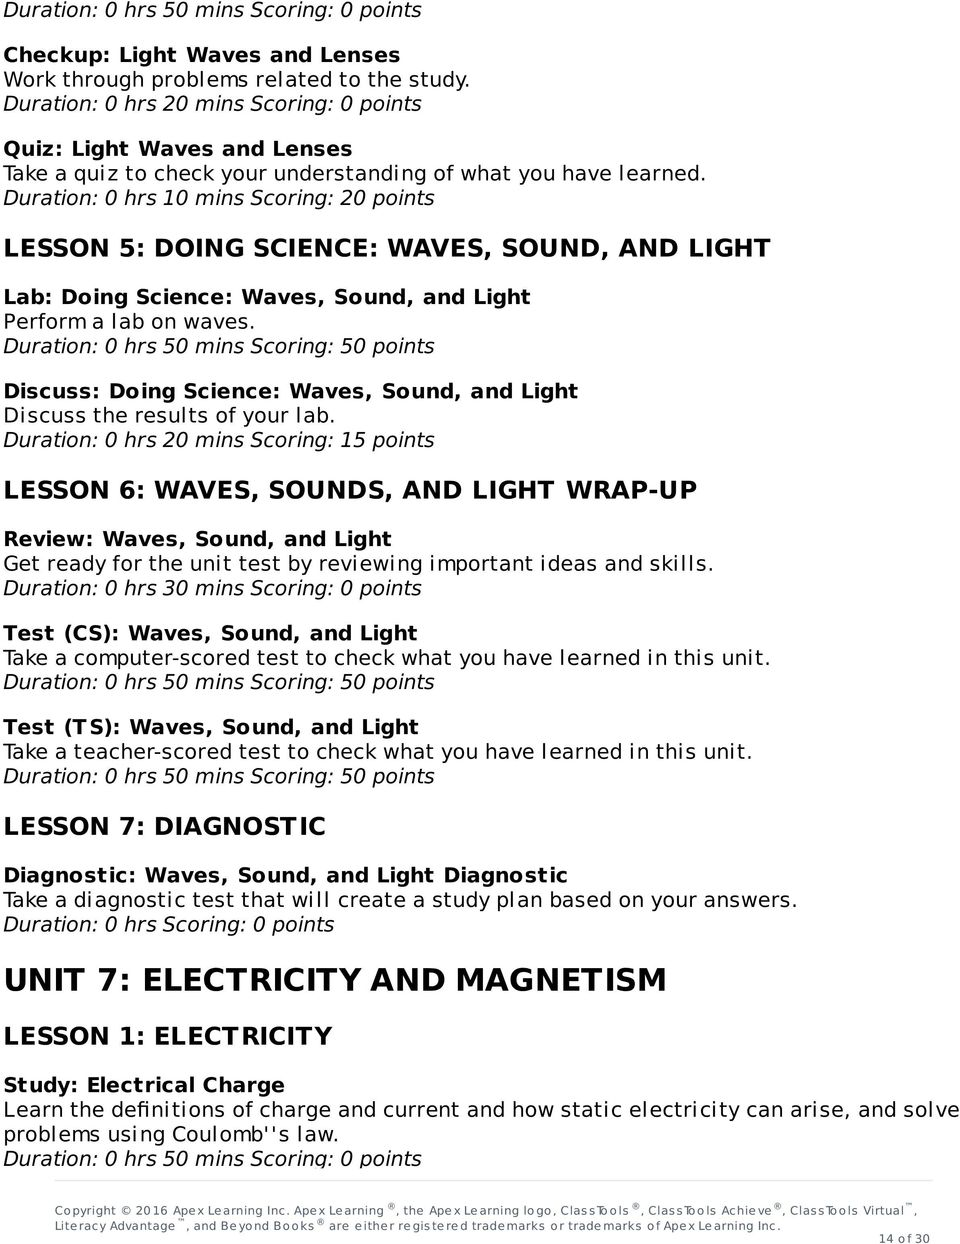 Duration: 0 hrs 20 mins Scoring: 15 points LESSON 6: WAVES, SOUNDS, AND LIGHT WRAP-UP Review: Waves, Sound, and Light Get ready for the unit test by reviewing important ideas and skills.